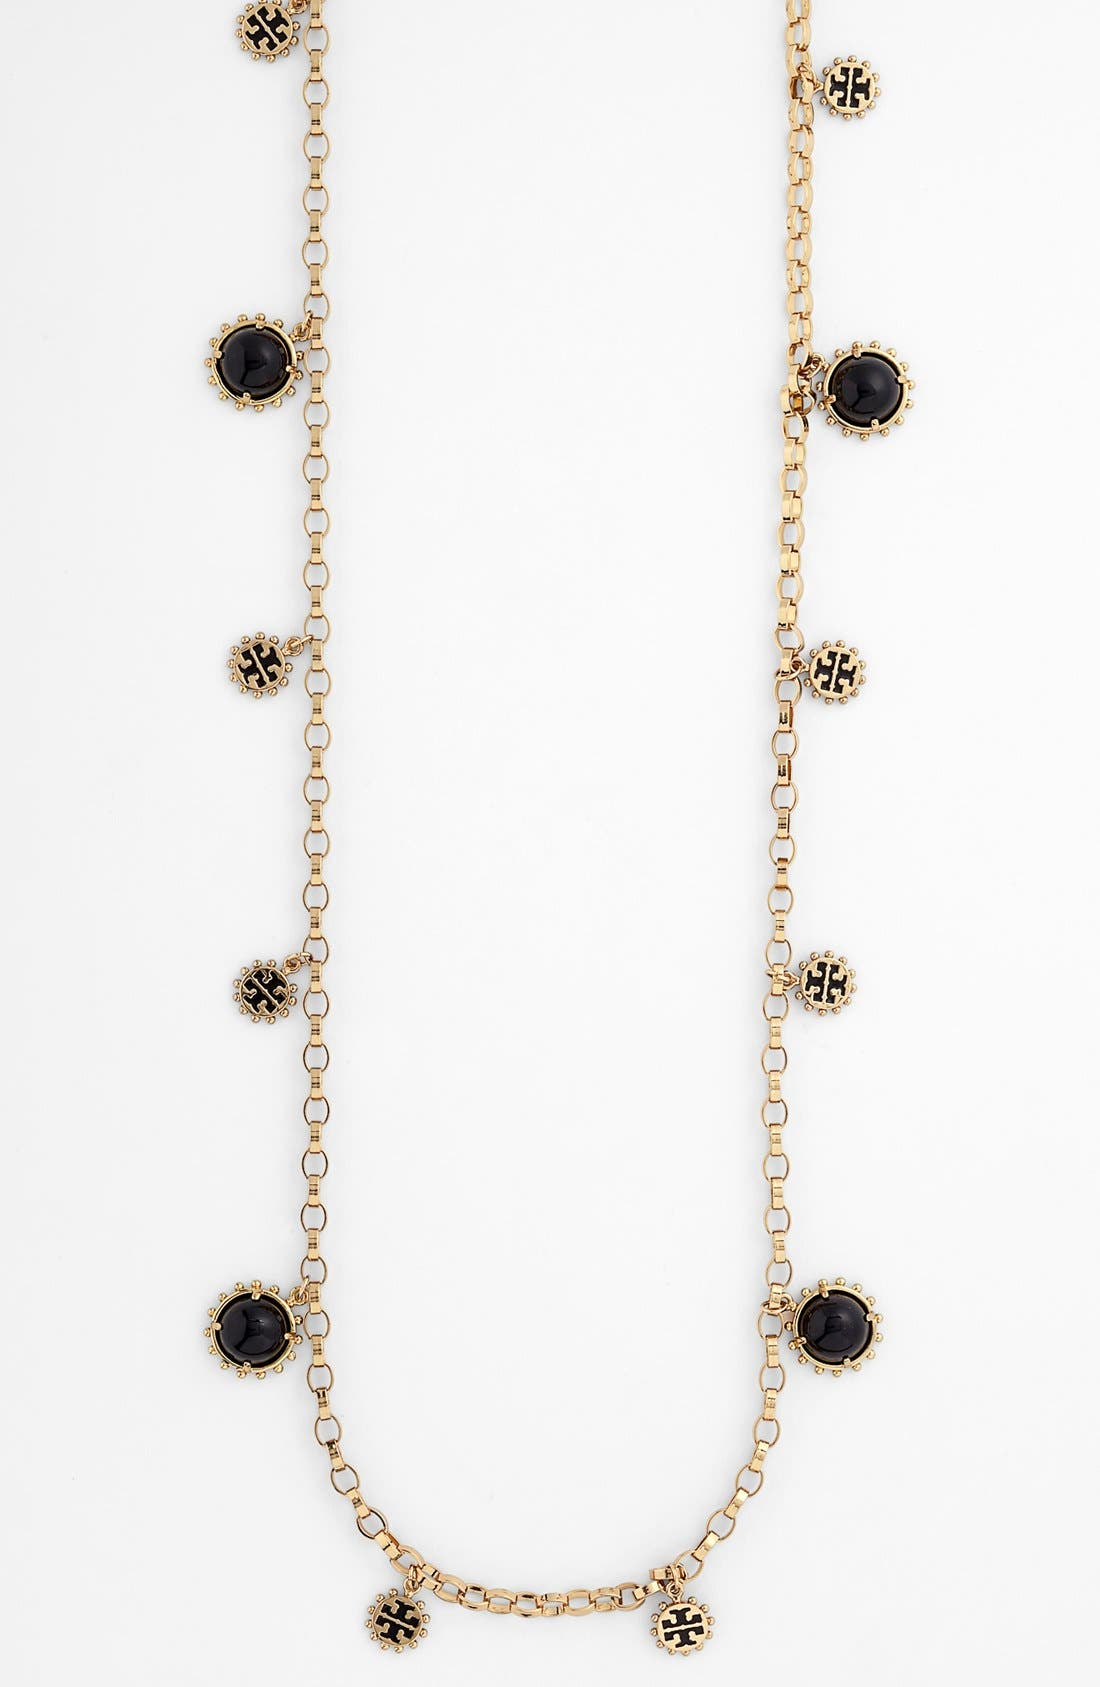 Alternate Image 1 Selected - Tory Burch 'Winslow' Long Link Necklace